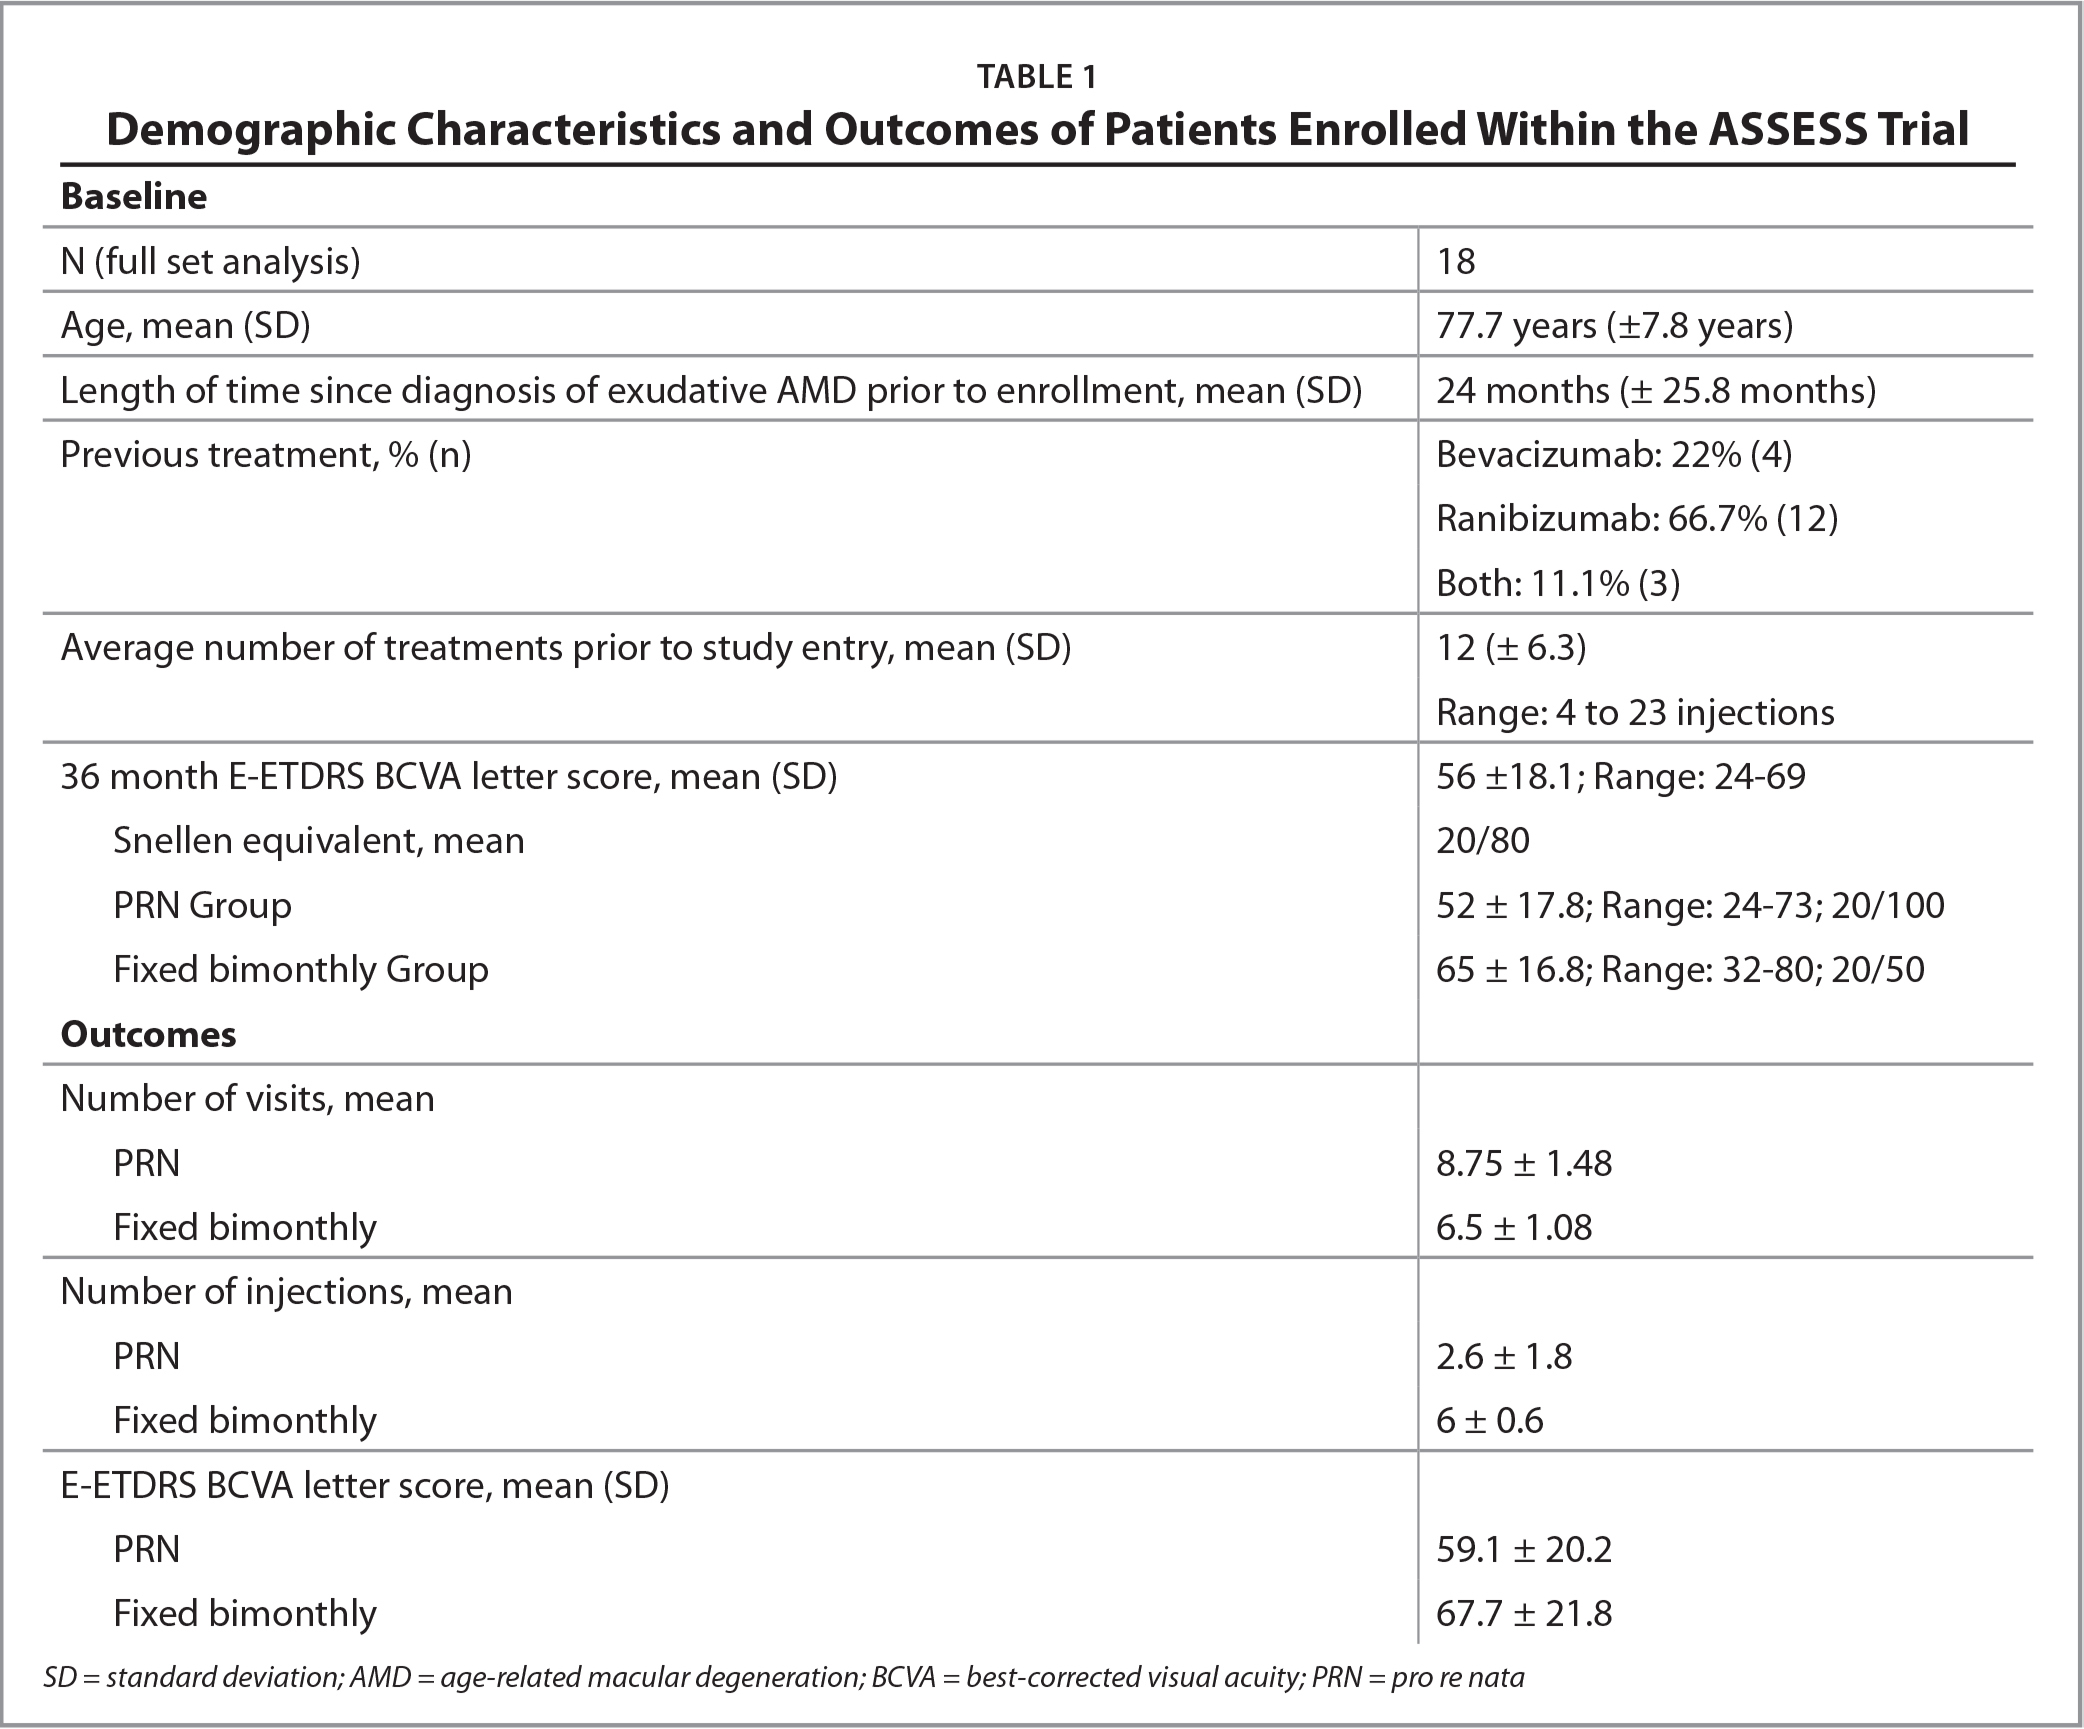 Demographic Characteristics and Outcomes of Patients Enrolled Within the ASSESS Trial